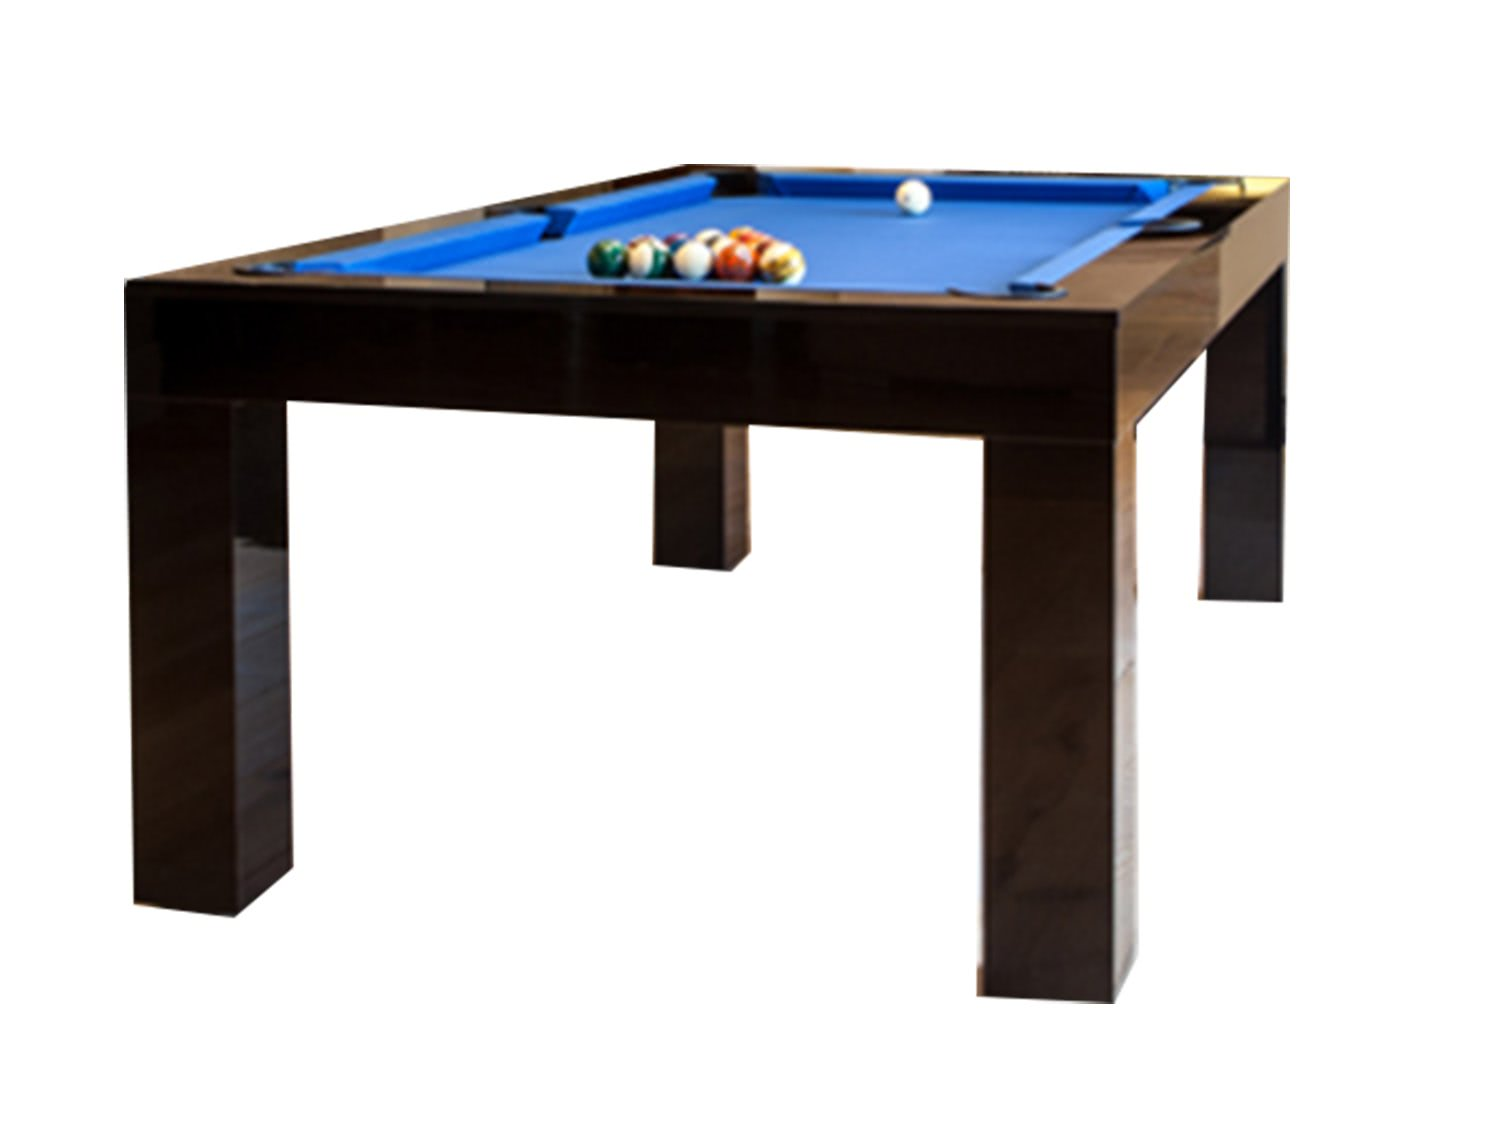 duo milano piano black pool dining table liberty games